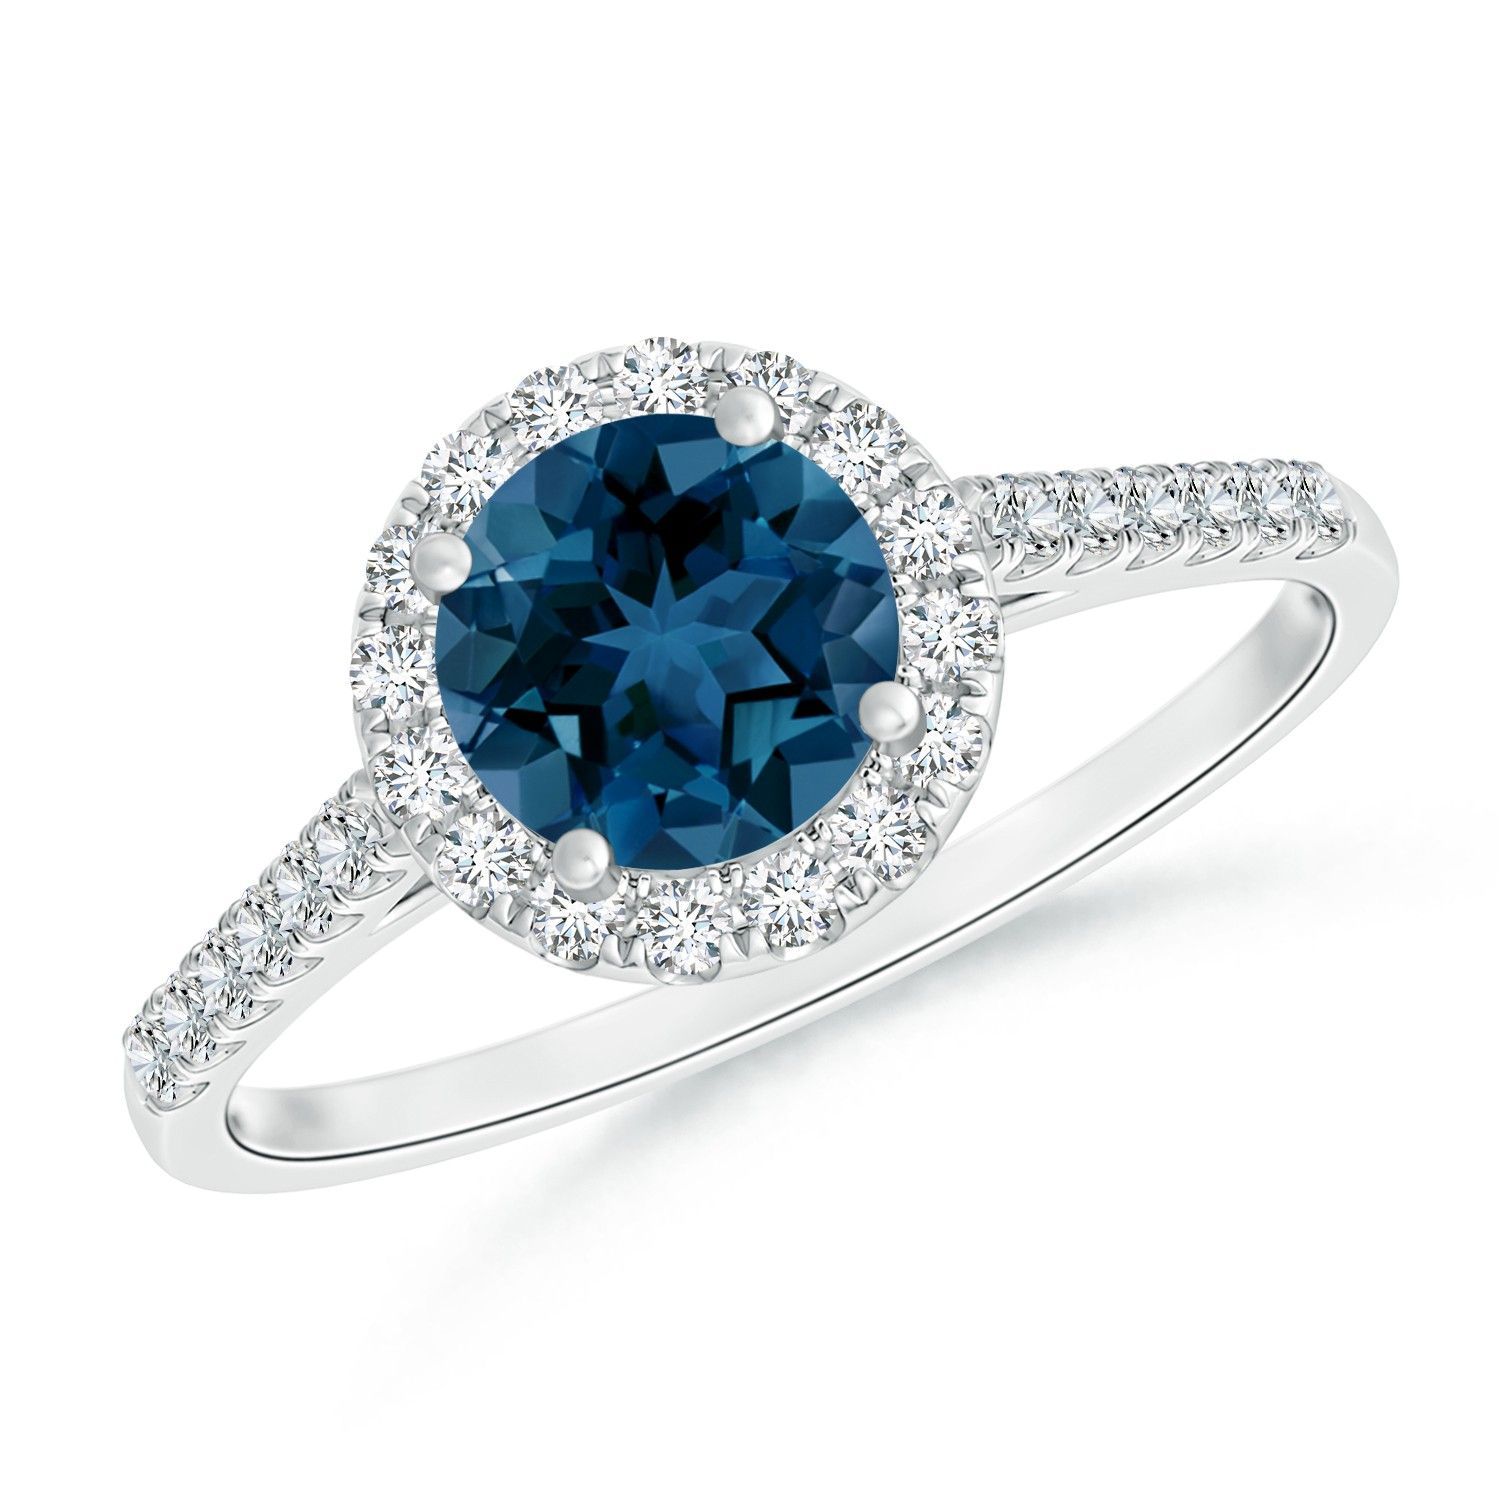 Angara London Blue Topaz Ring with Diamond Halo in White Gold ltqrY2Ig